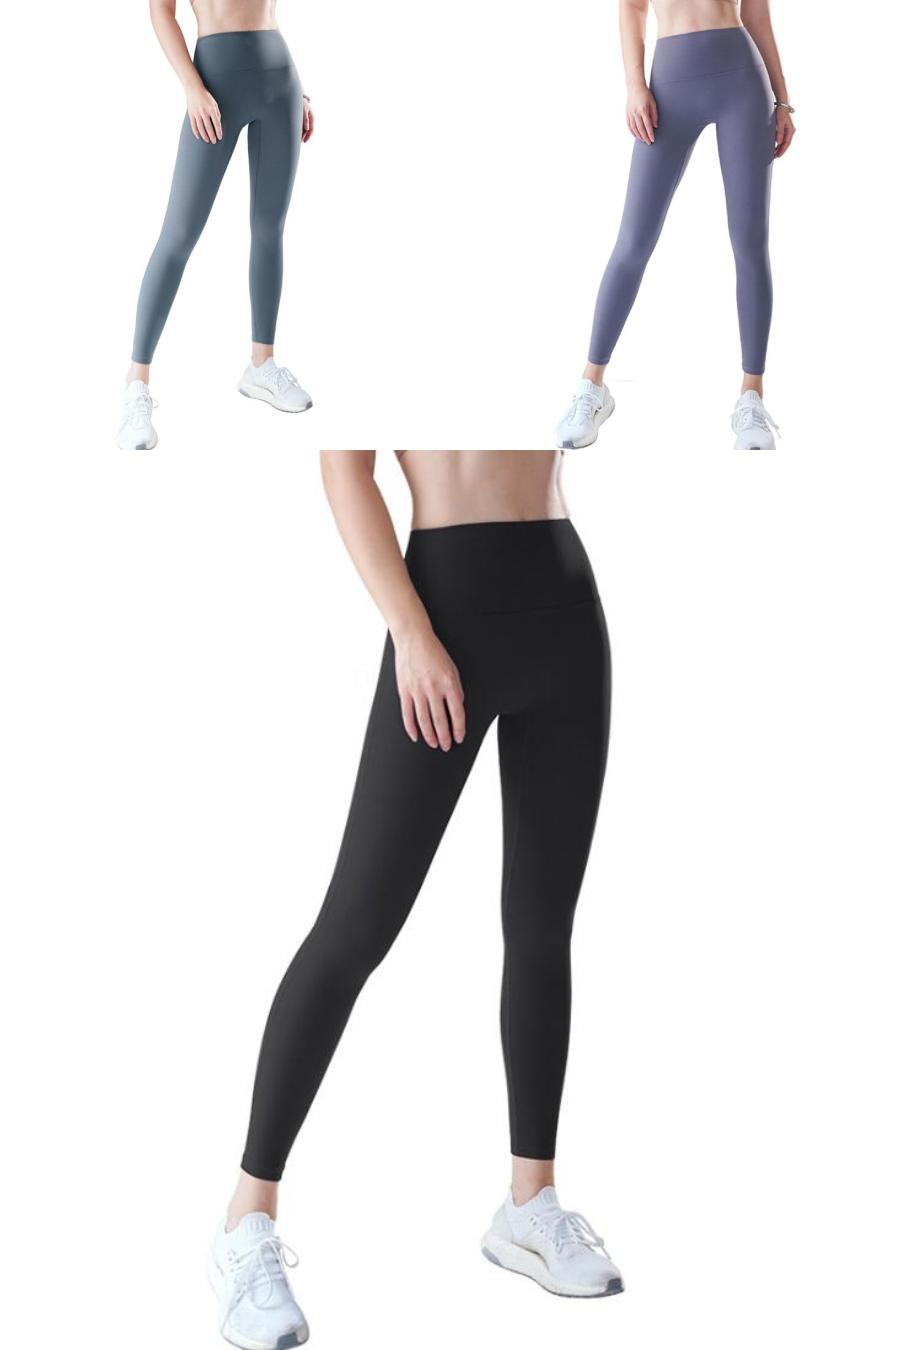 New Arrivals Womens Printed Beauty Yoga Gym Leggings Pants For Woman Super Elastic Sexy Slim Sprots Fitness Leggins Bodycon Pencil Trouse#725